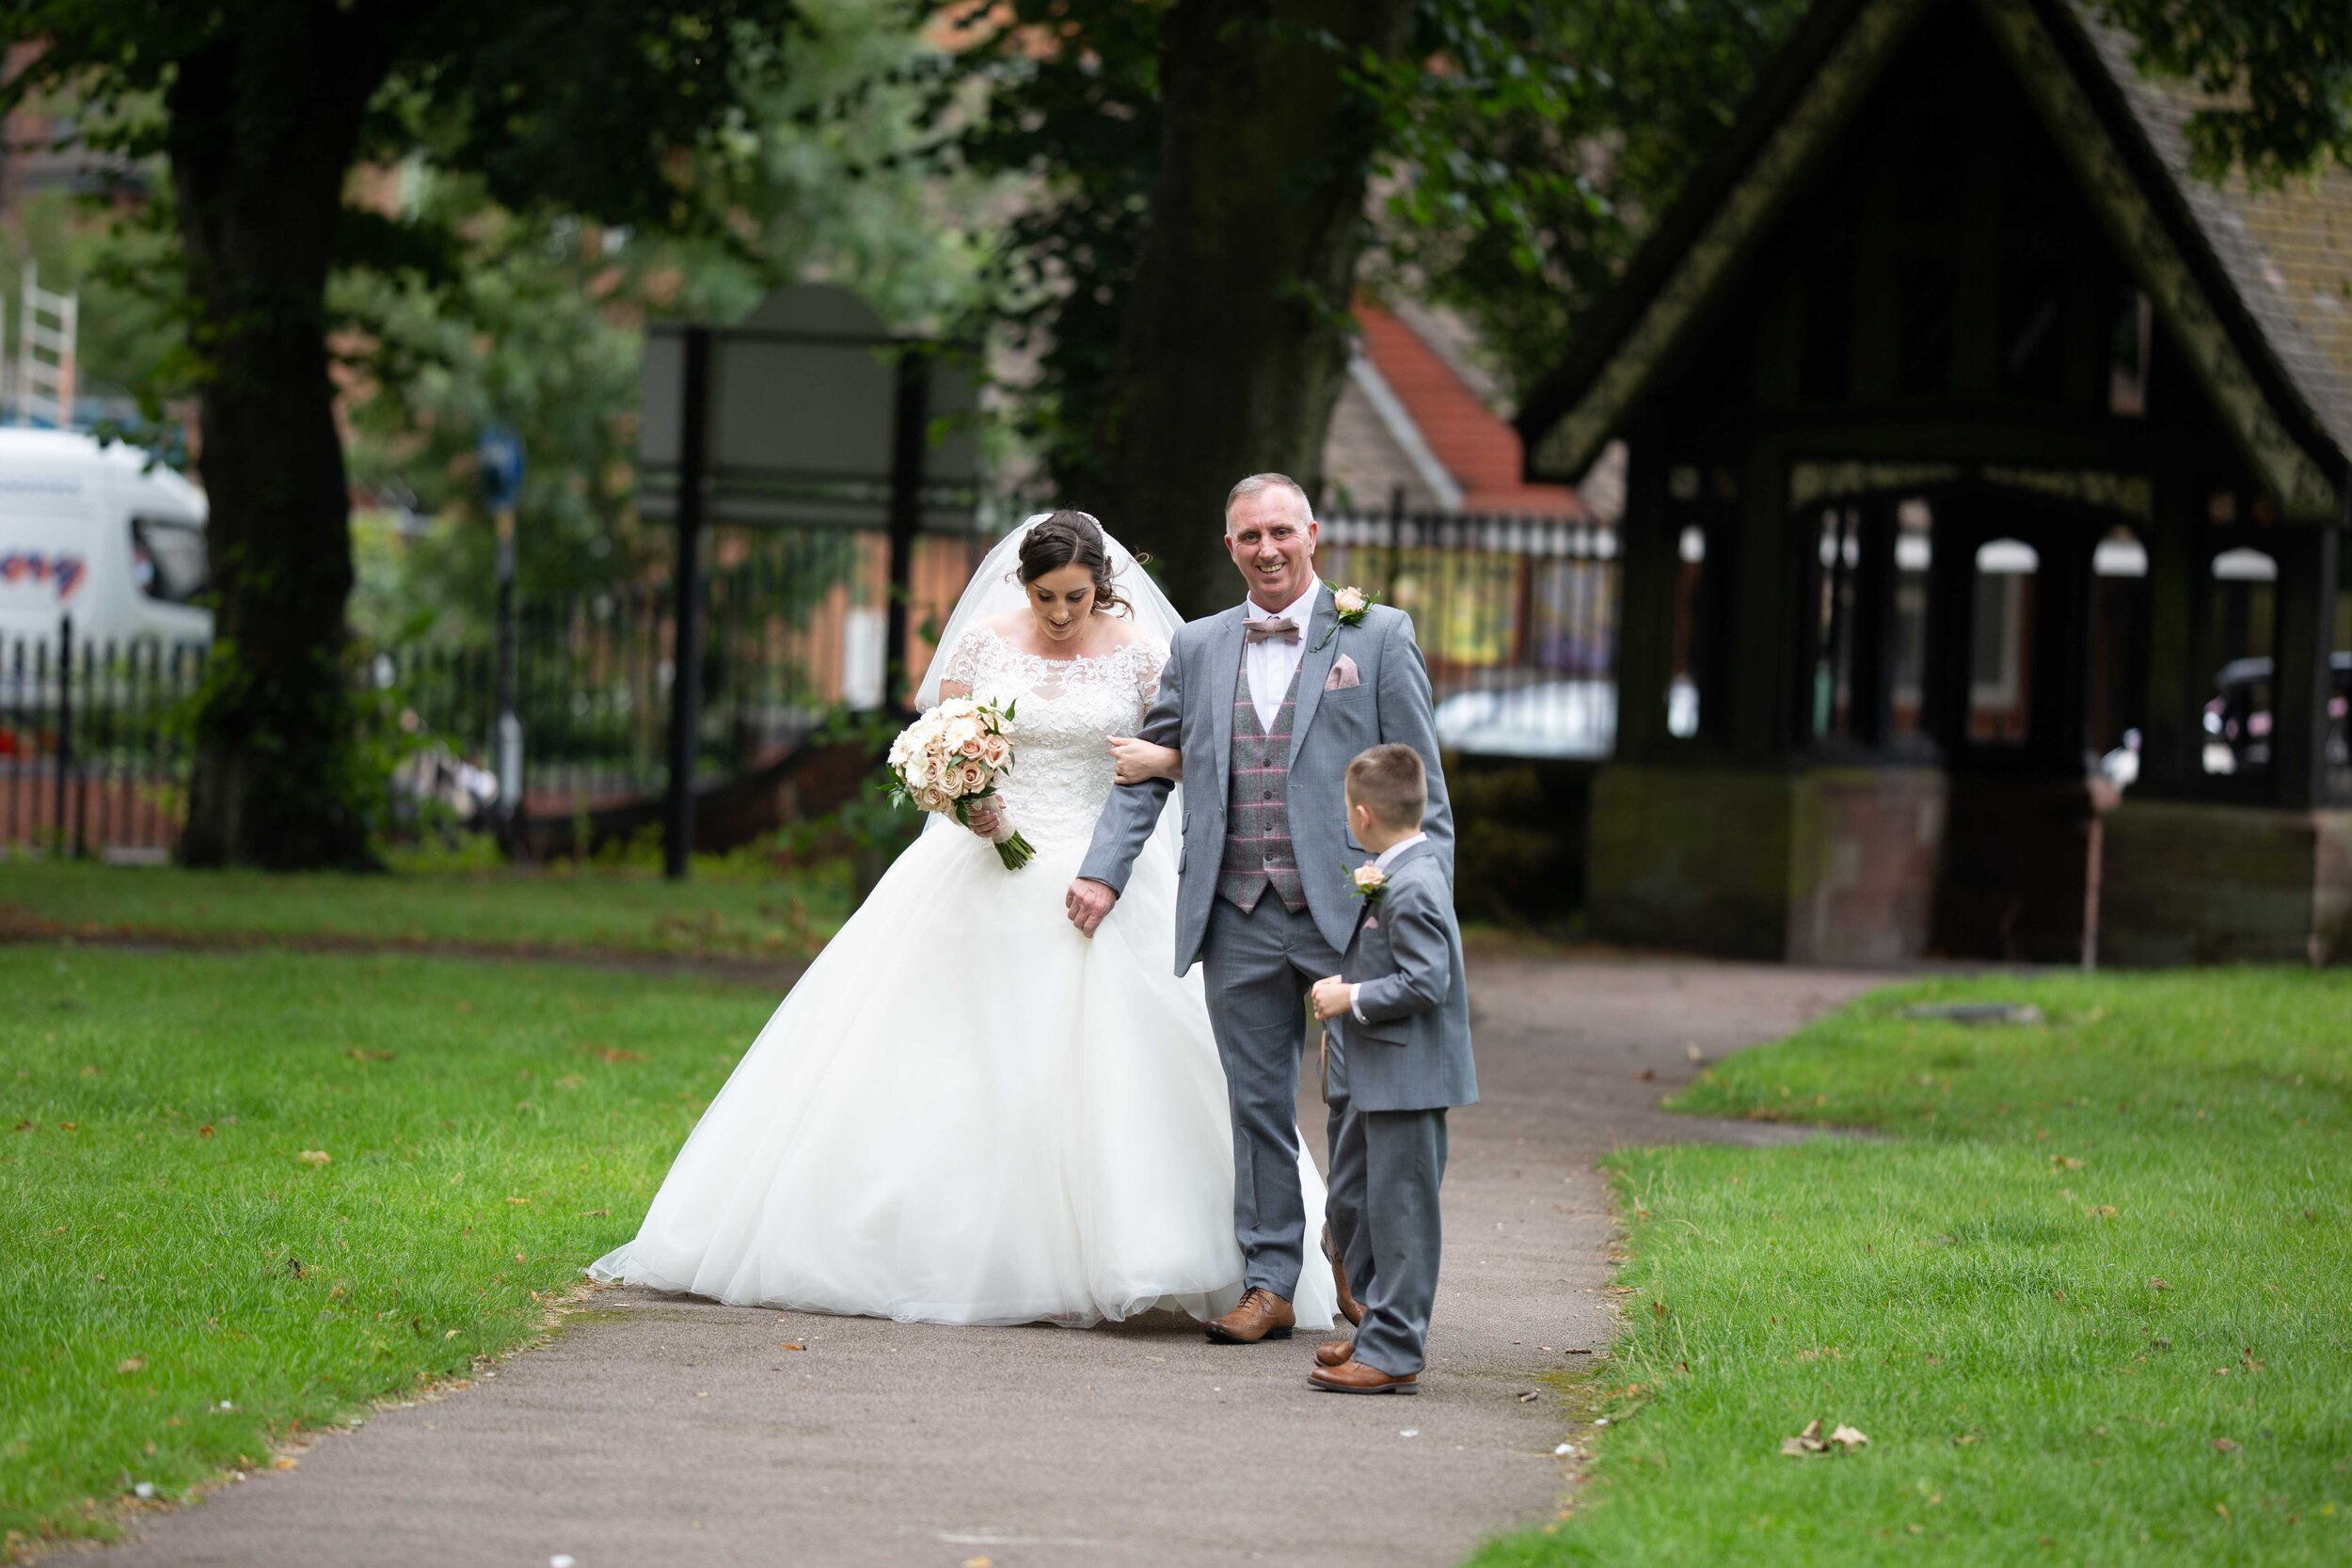 Lea Cooper photography - wedding photography - st Lawrence church dalaston West Midlands Willenhall Wednesday wedding photographer Brookfields club house cannock road - 21.JPG